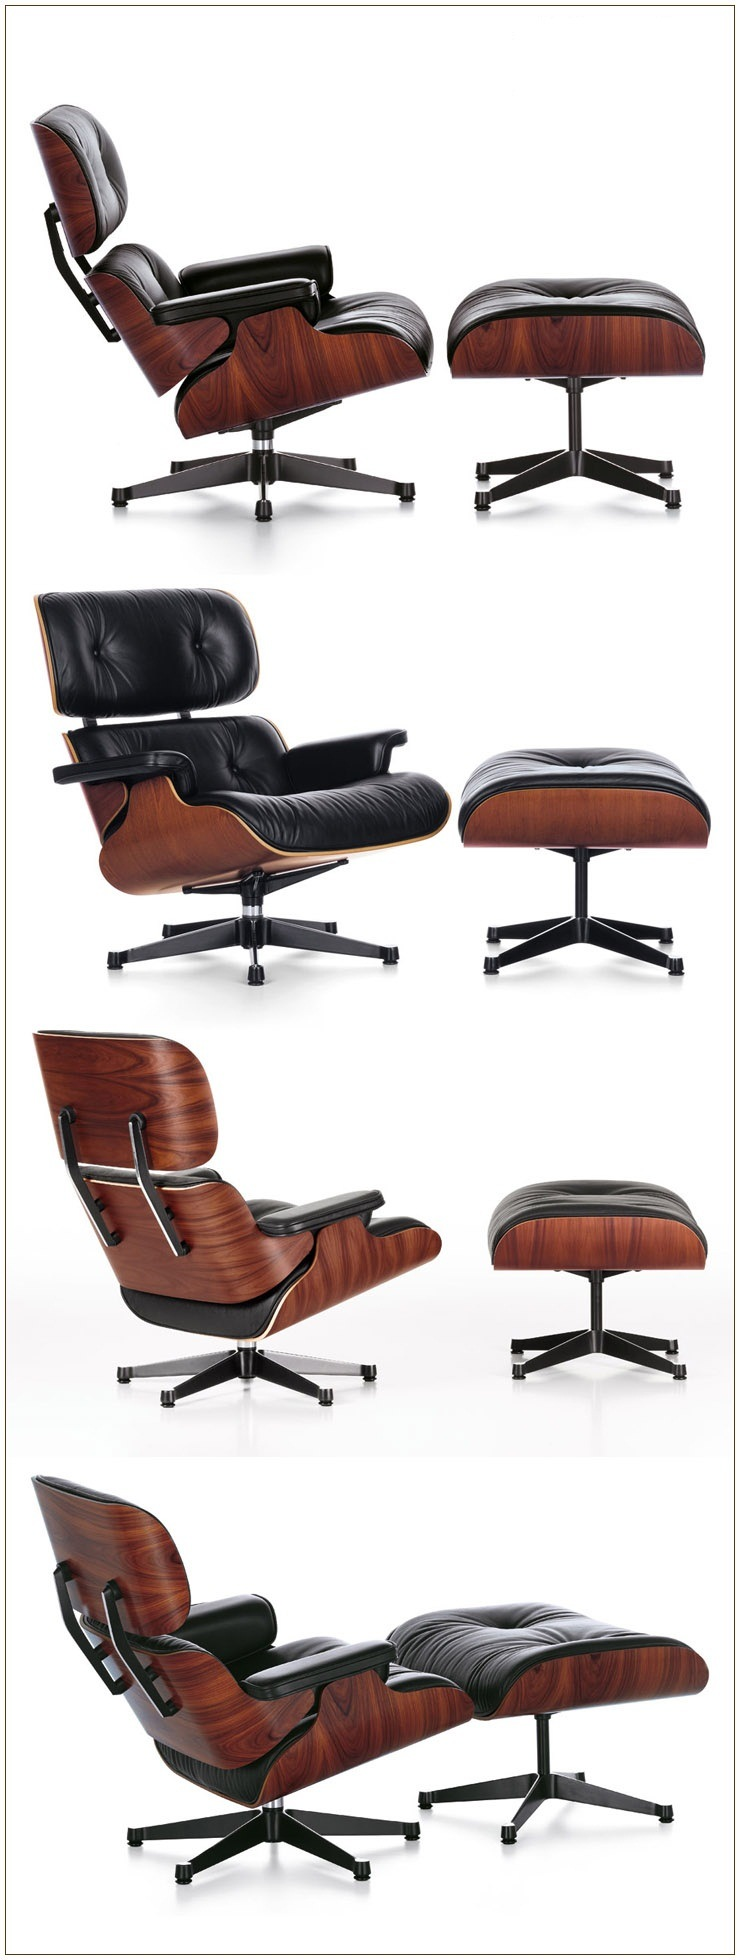 china charles eames lounge chair dl 1034 china charles eames chair office chair. Black Bedroom Furniture Sets. Home Design Ideas